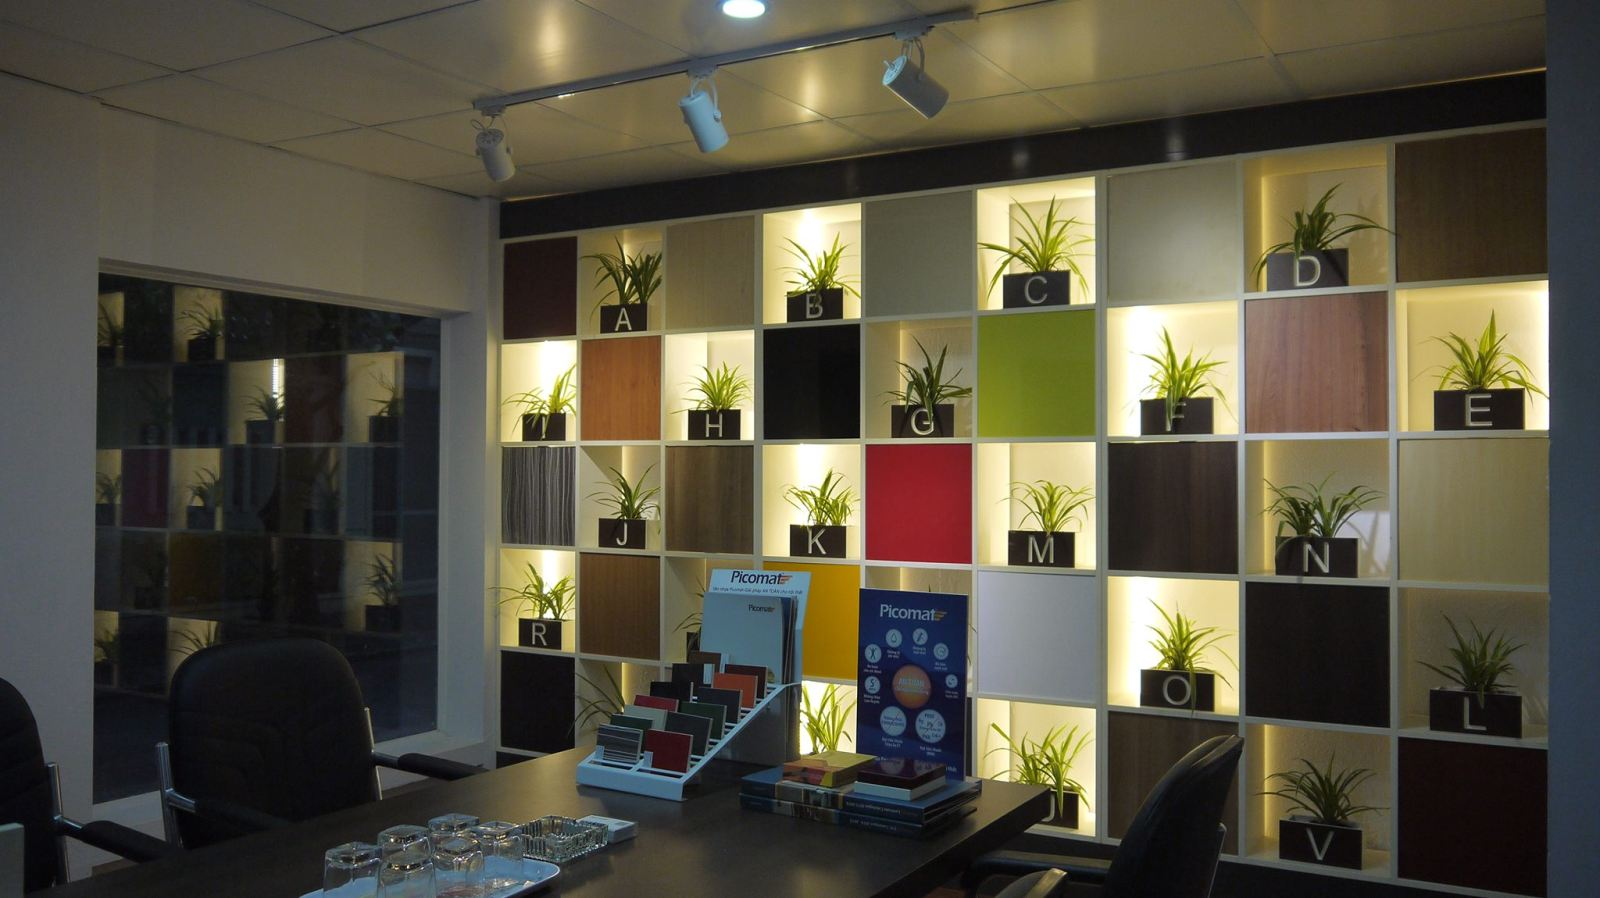 ... Acrylic sheet onto PVC Foam Board within 3-5 days per order. It is an  effective solution to designs that require luxury and exquisite in every  details.